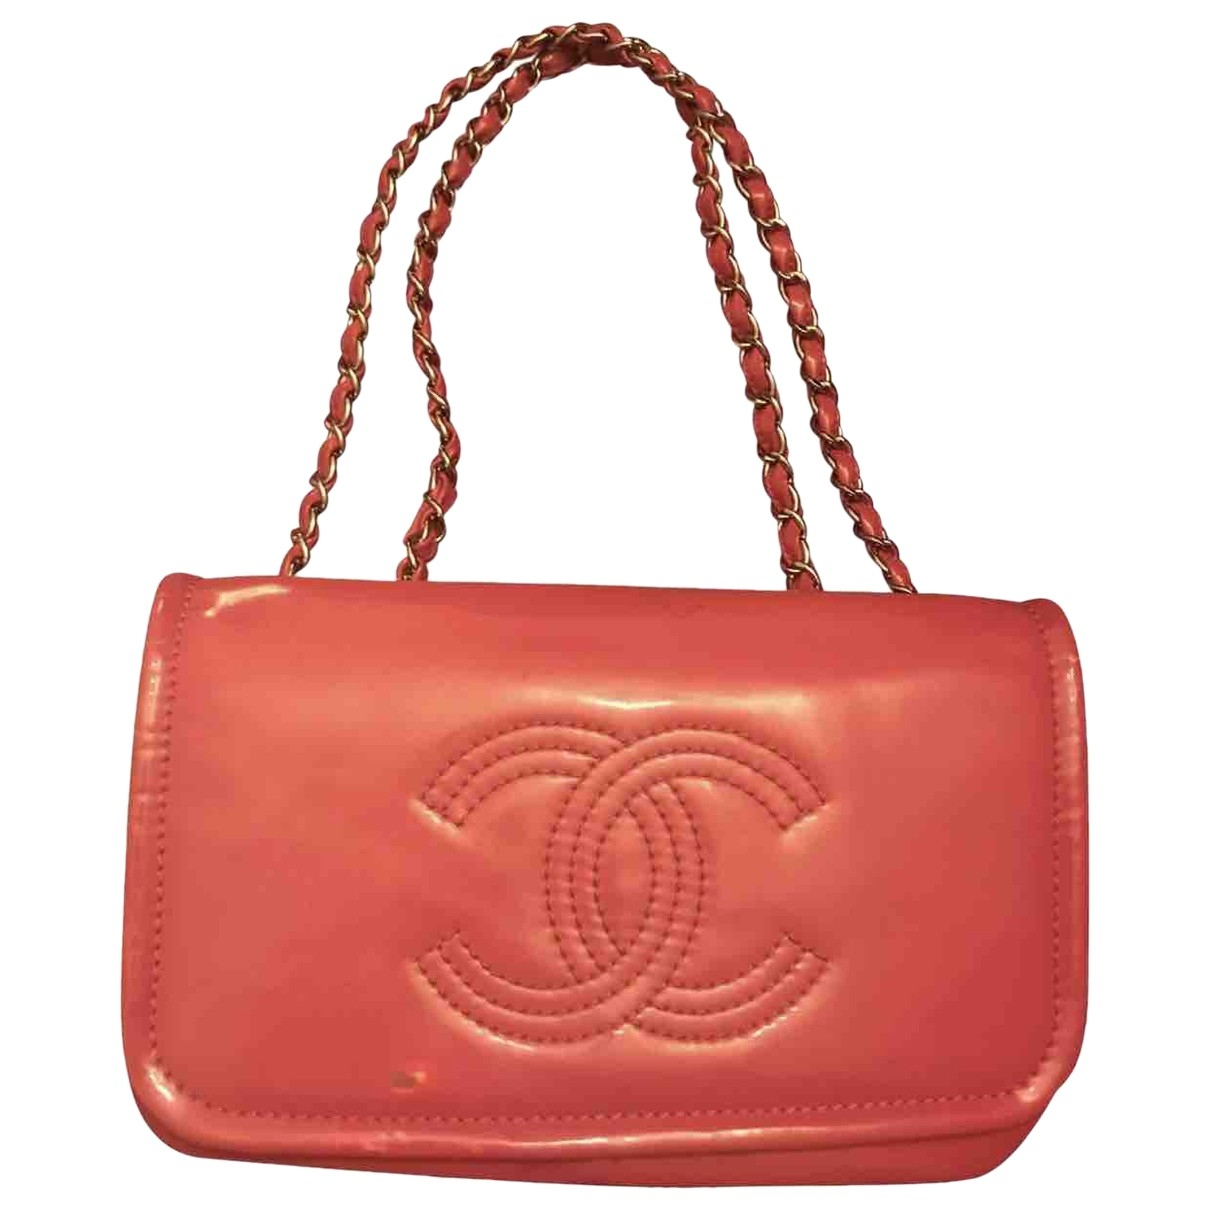 Chanel \N Pink Patent leather handbag for Women \N